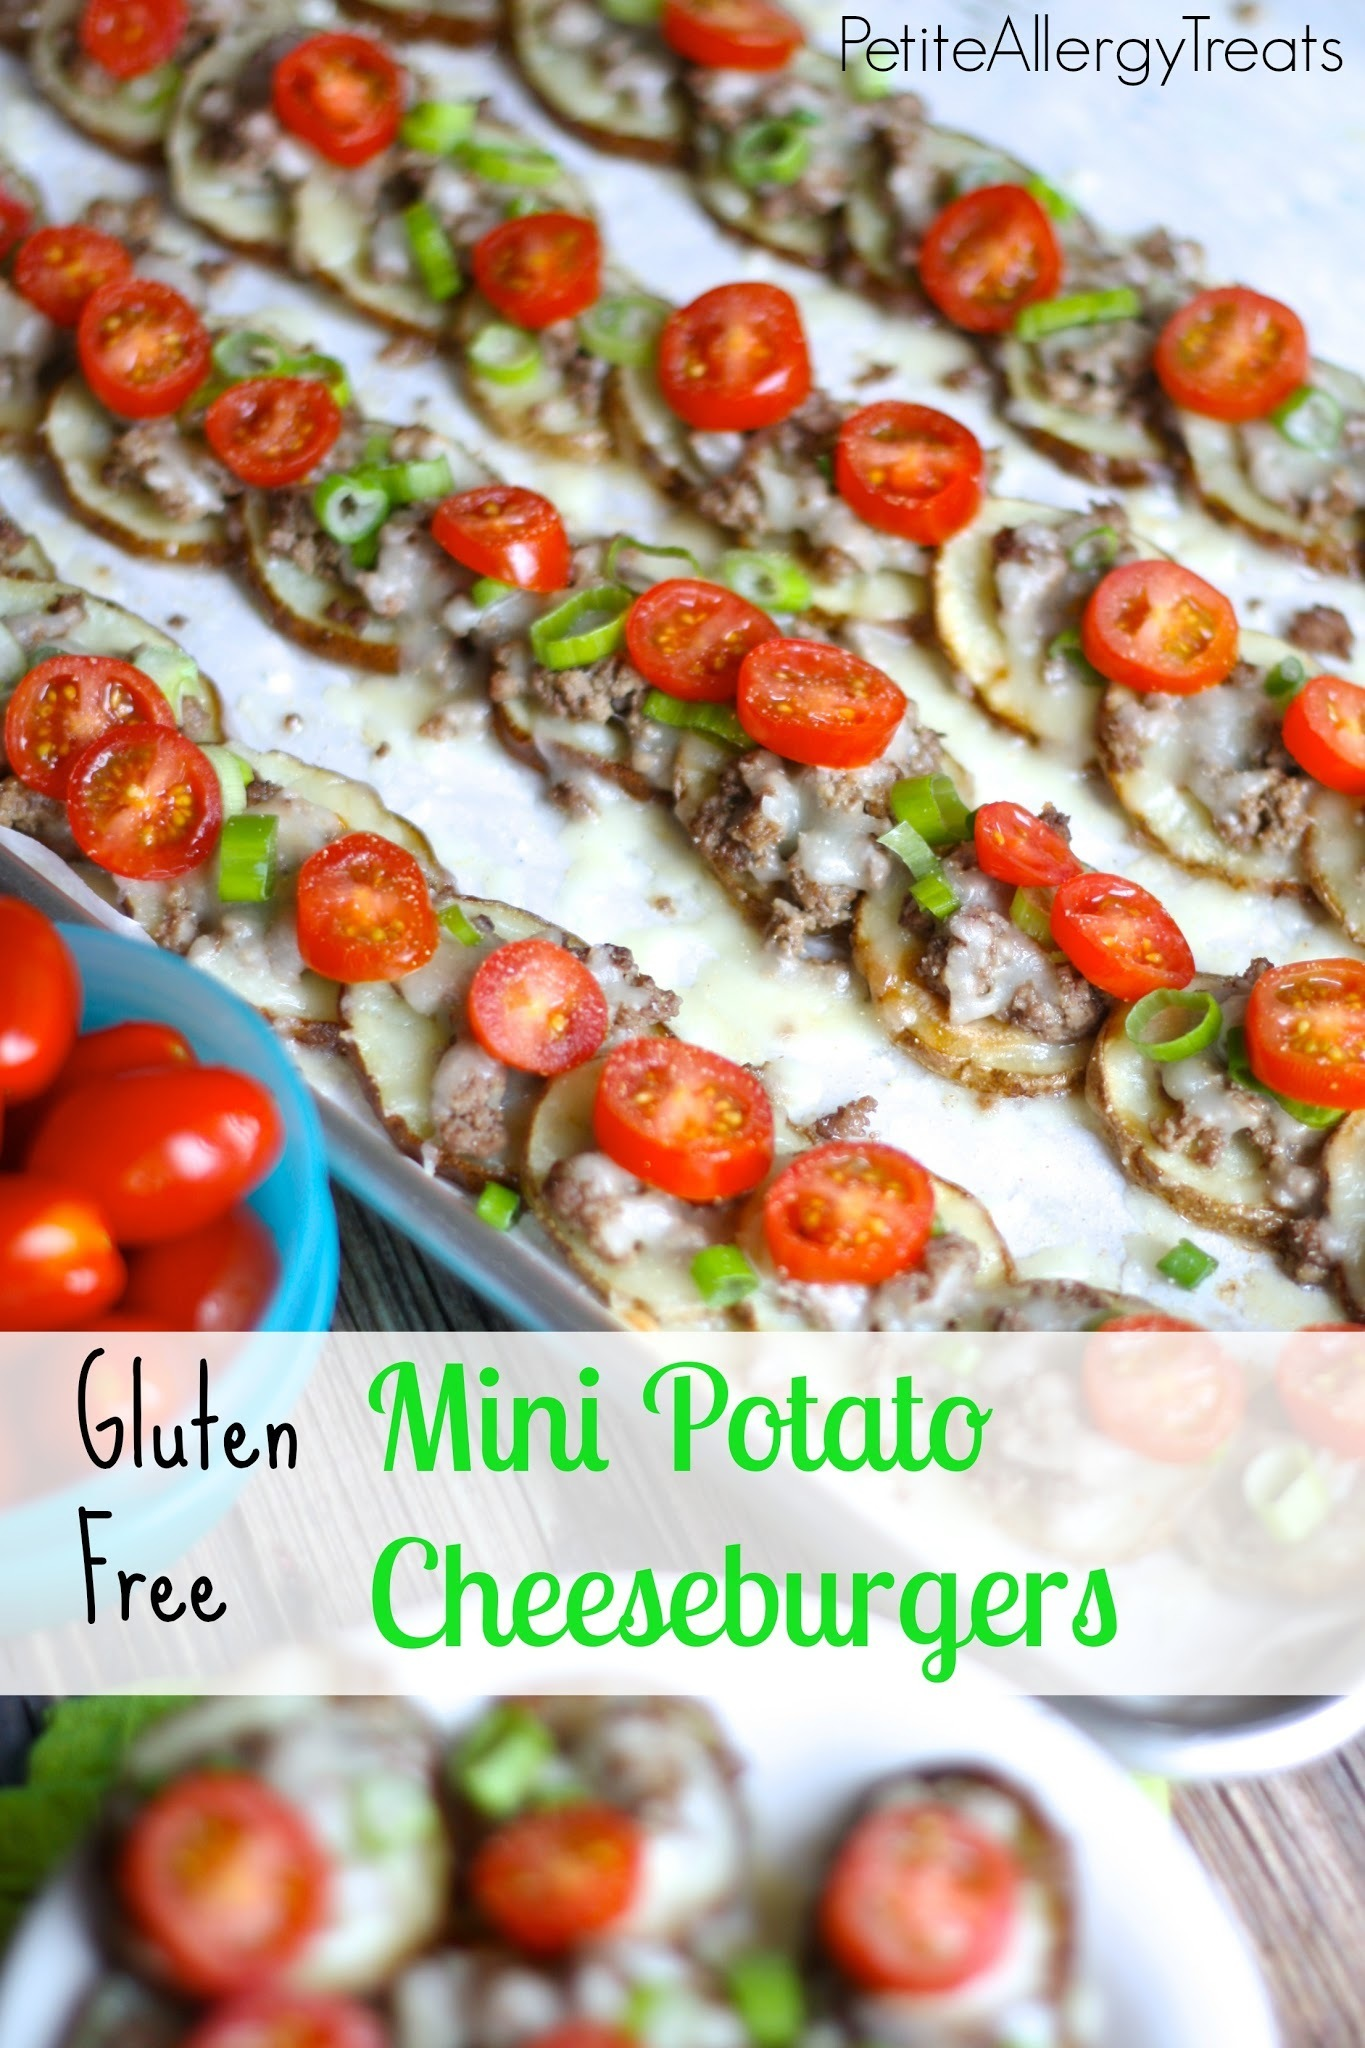 Gluten Free Potato Cheeseburgers & A Lesson in Food Allergies